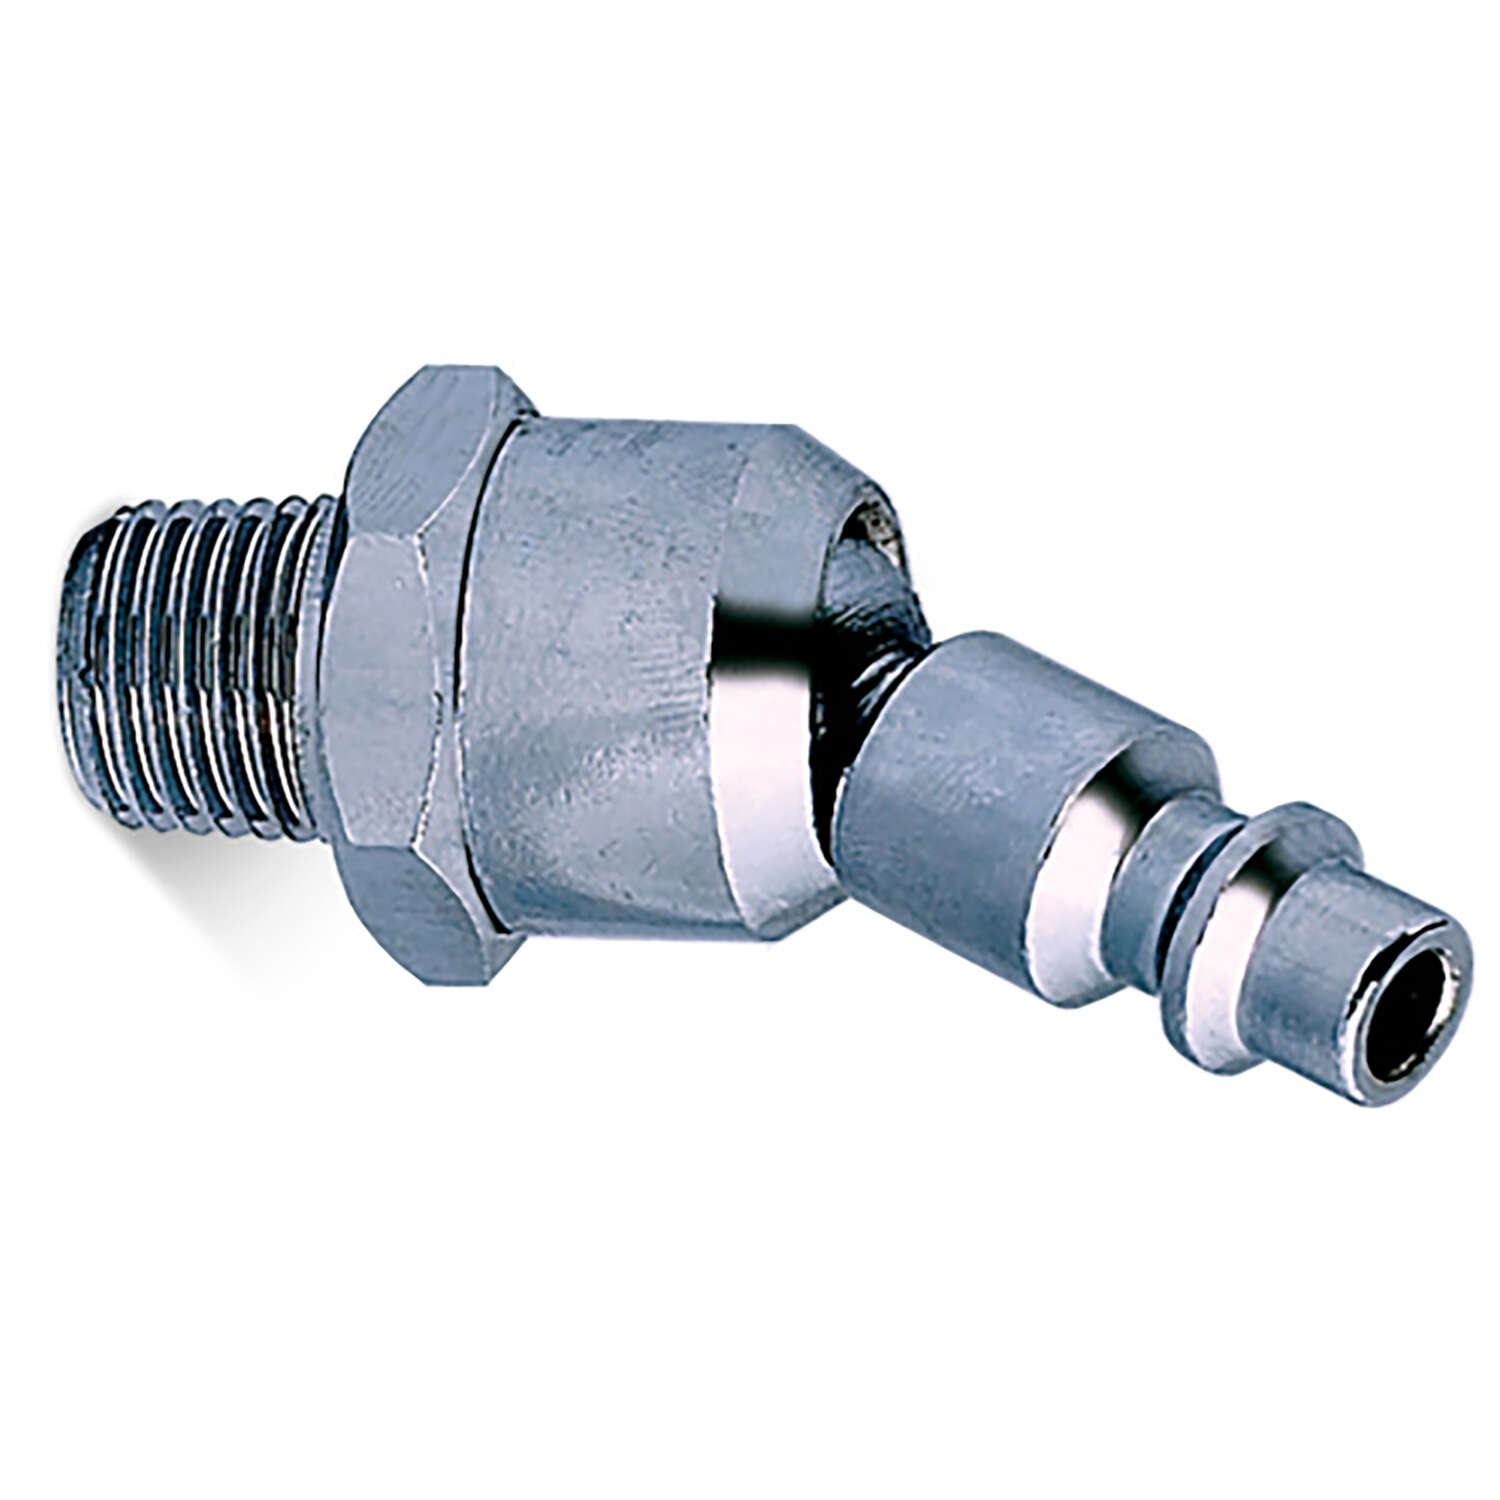 Senco  Industrial  Swivel Male Plug  1/4 in. MPT   x 1/4 in.  1 pc.